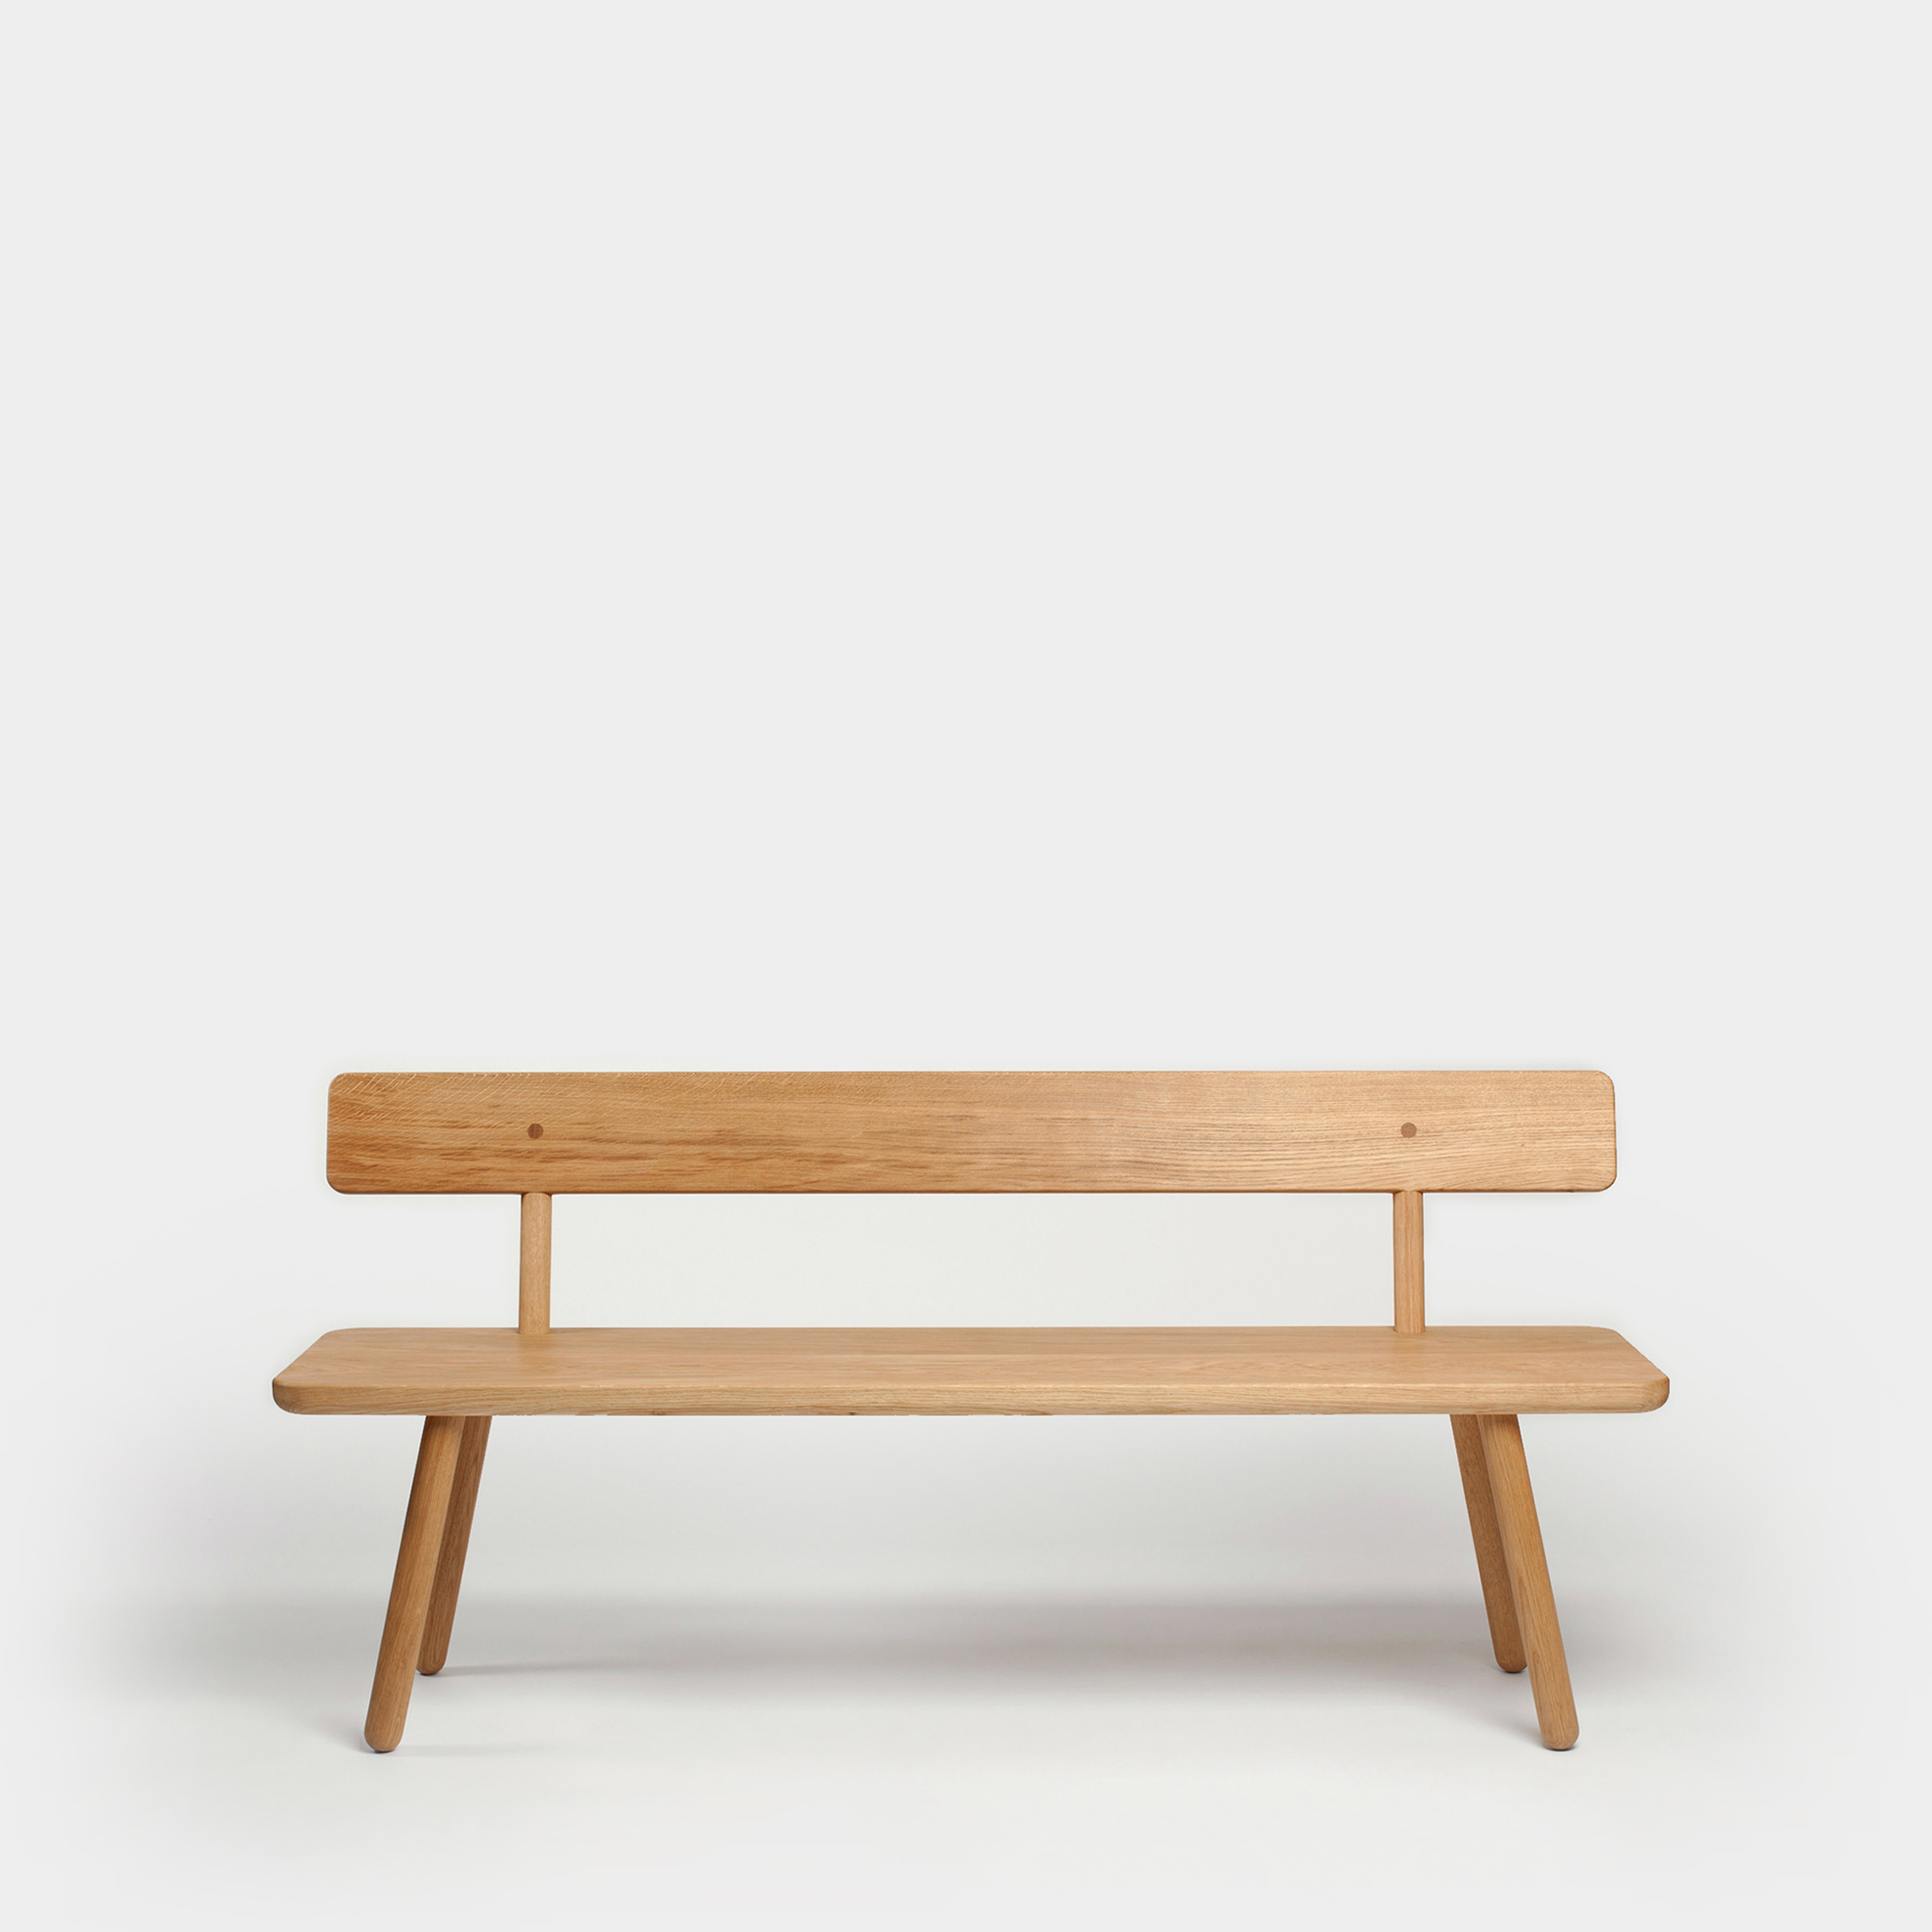 Red Oak Kitchen Table, Bench Back One Oak Series One Furniture Another Country